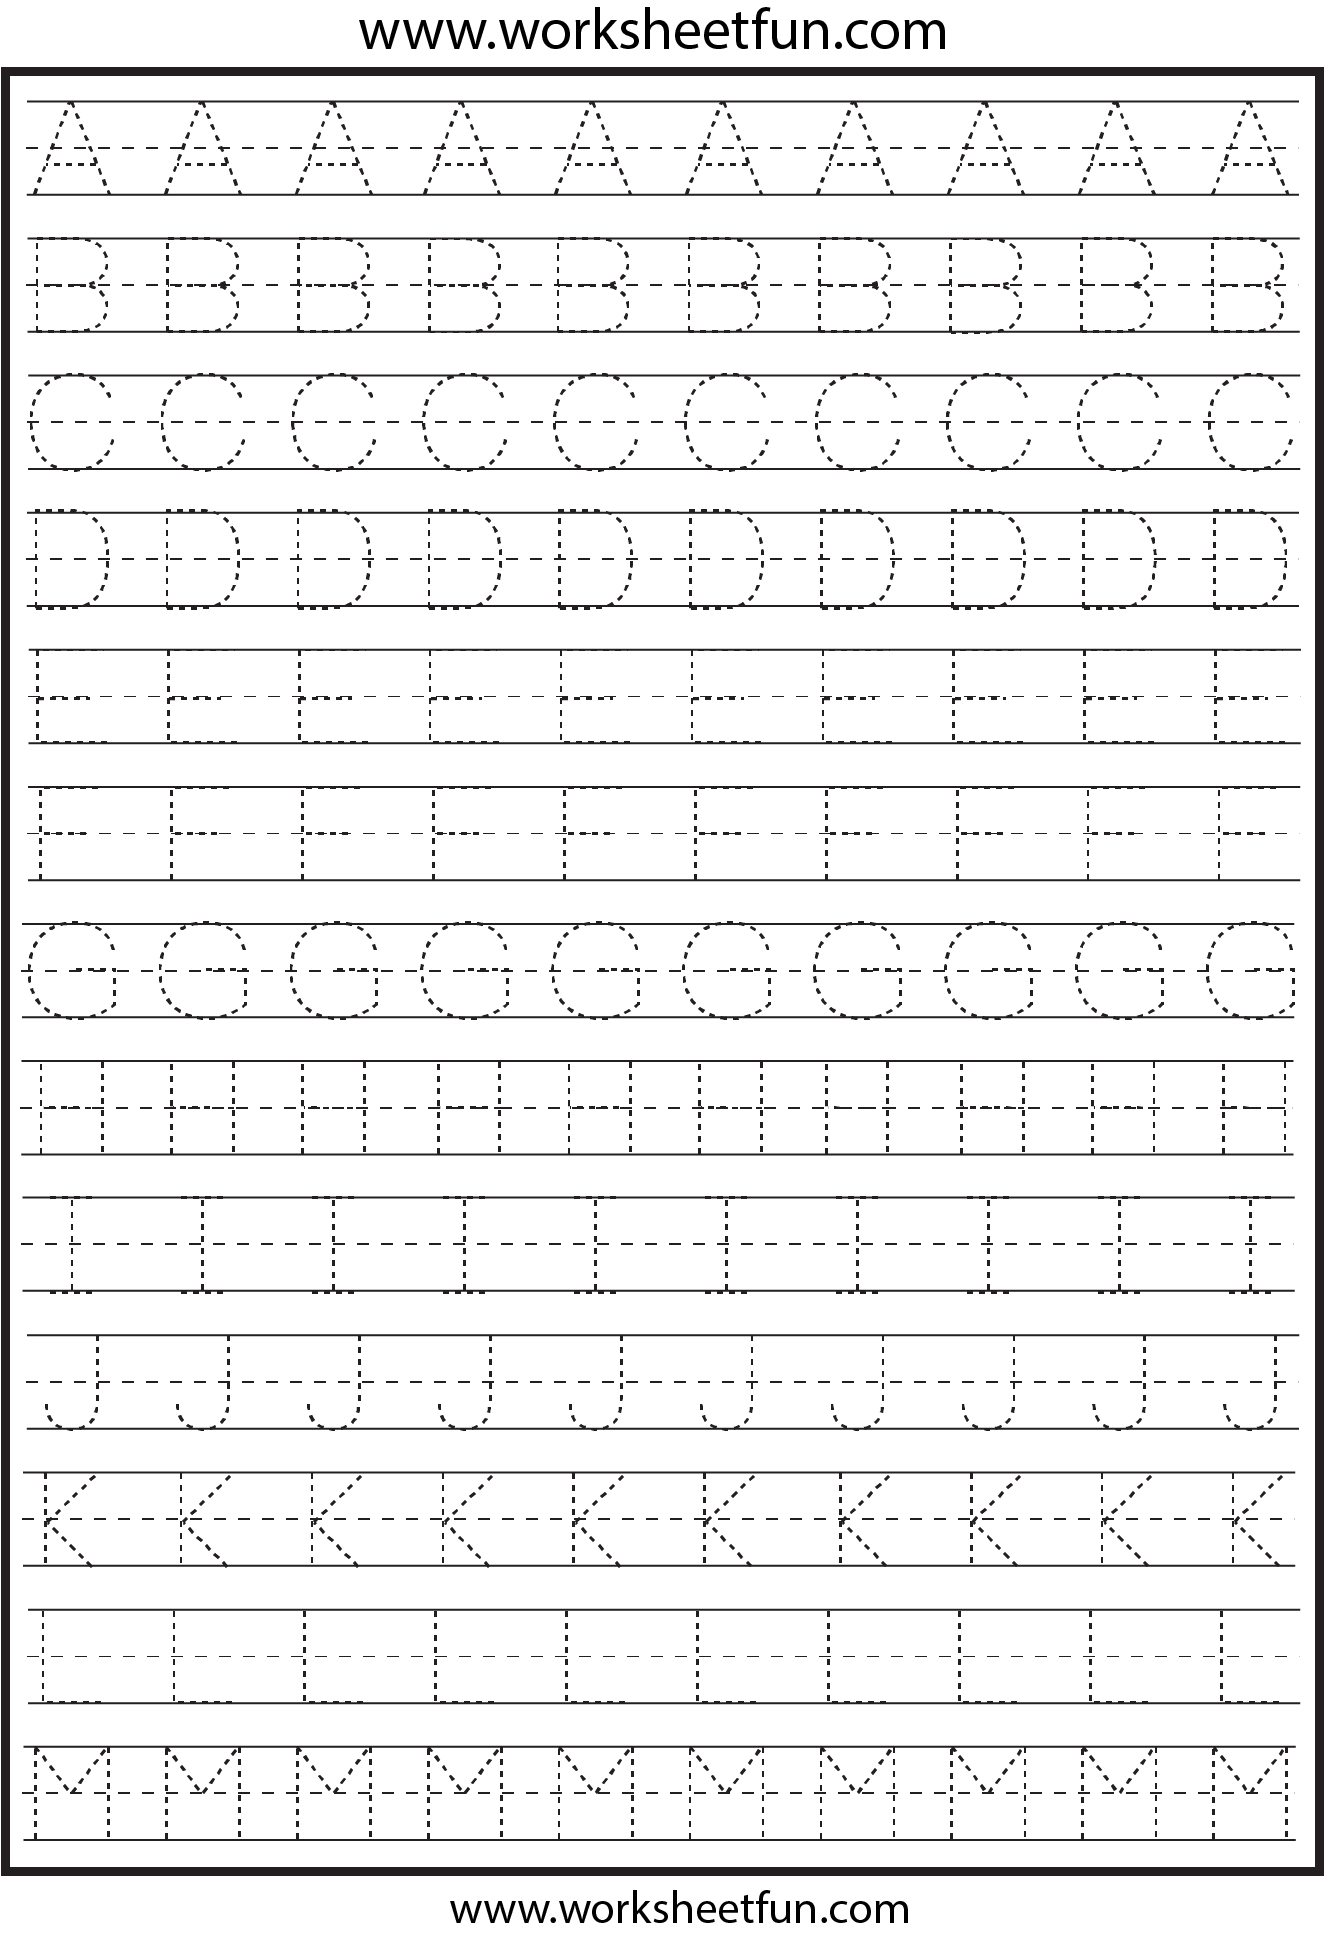 worksheet Letter Tracing Worksheet letter tracing i need a ton of these printed lol school stuff worksheets for kindergarten capital letters alphabet 26 free pri